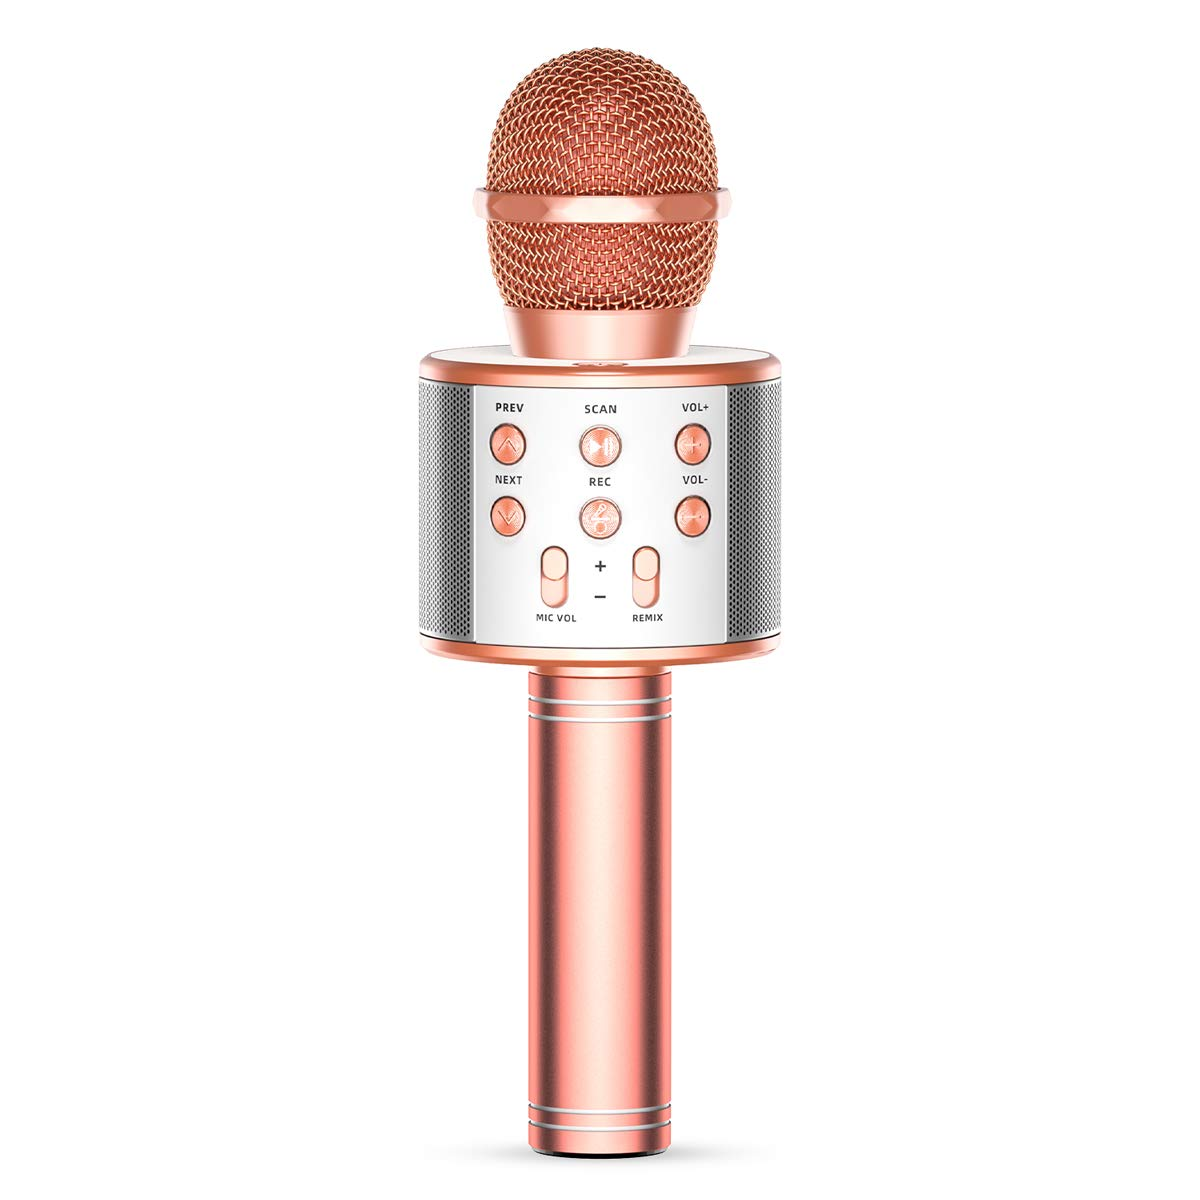 TRONICMASTER Wireless Karaoke Microphone Bluetooth, 3 in 1 Wireless Portable Handheld Mic Karaoke Machine for Christmas Home Birthday Party, Voice Disguiser Karaoke Microphone for Kids by Tronic Master